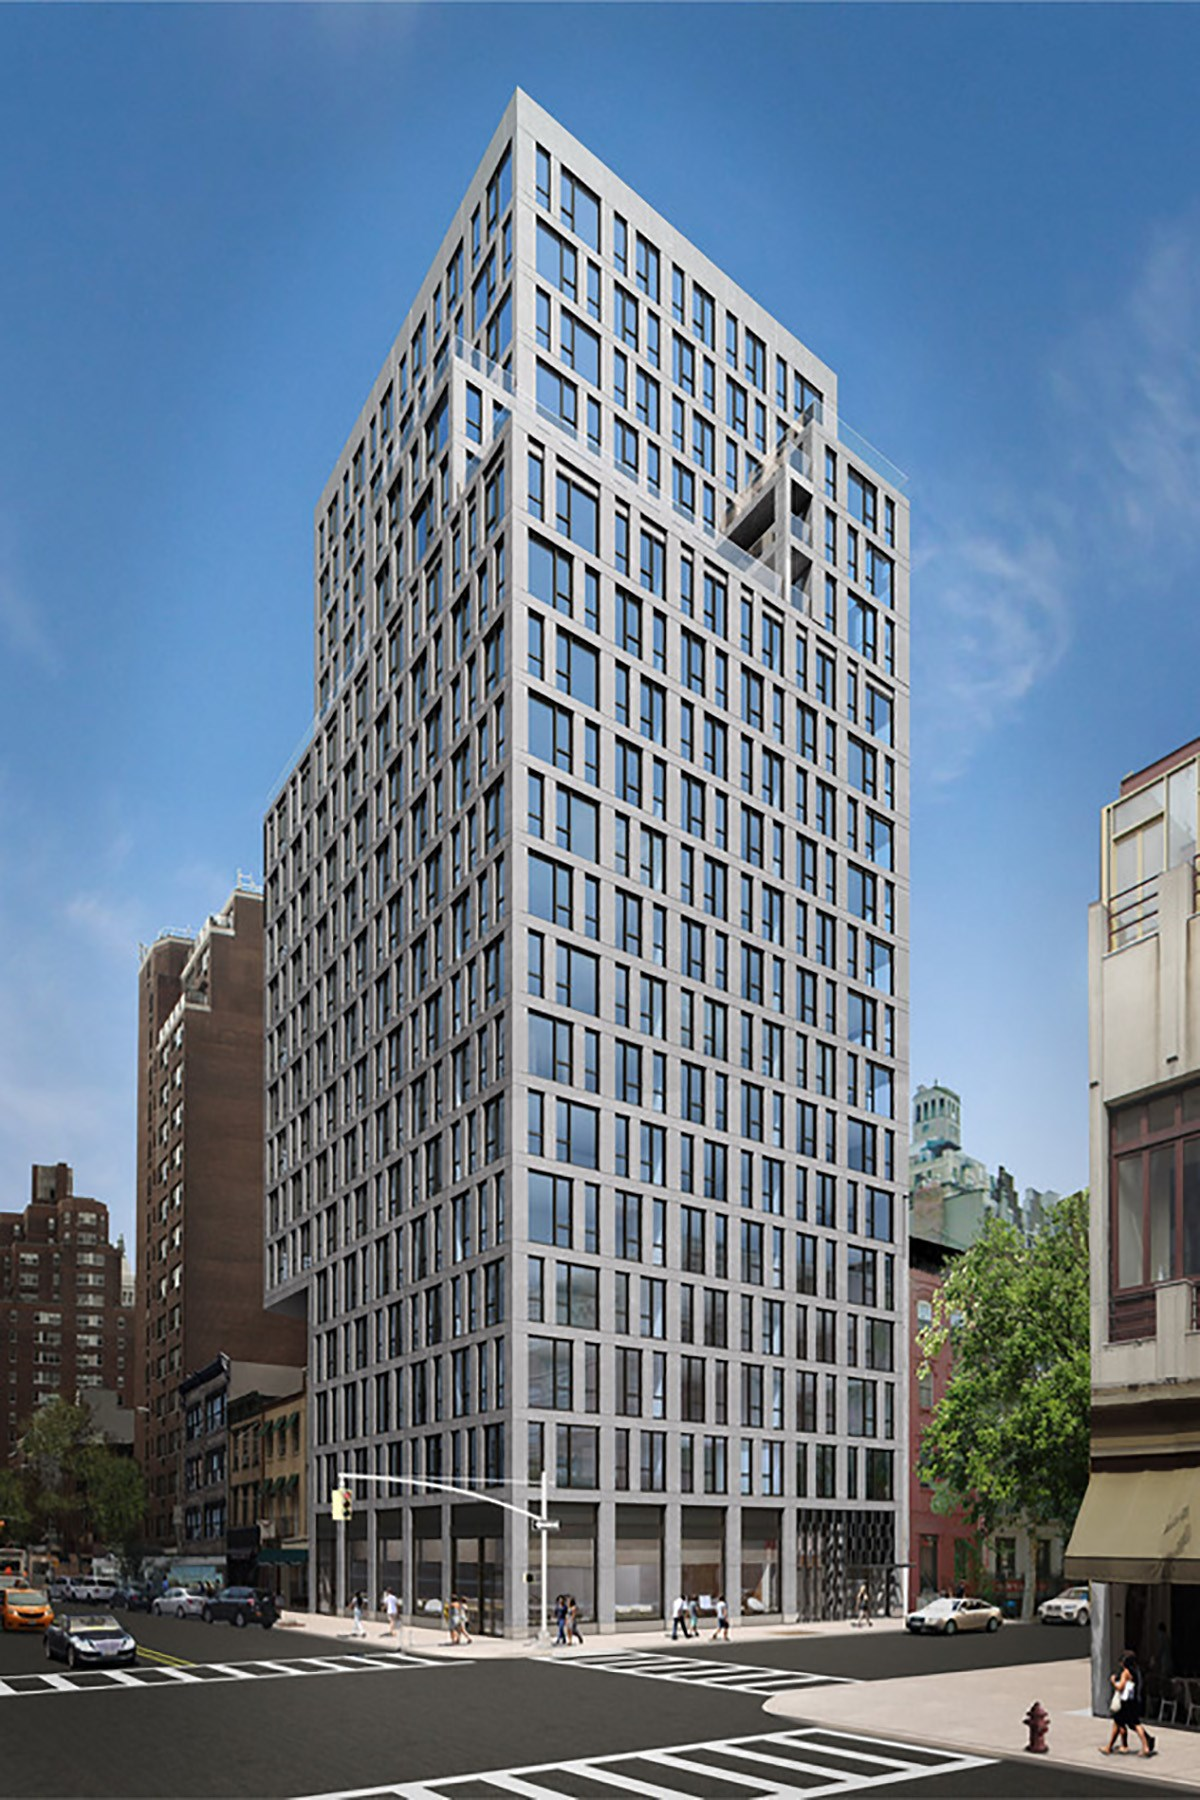 Additional photo for property listing at 160 East 22nd Street, Apt. 15E 160 East 22nd Street Apt. 15E New York, New York 10011 United States